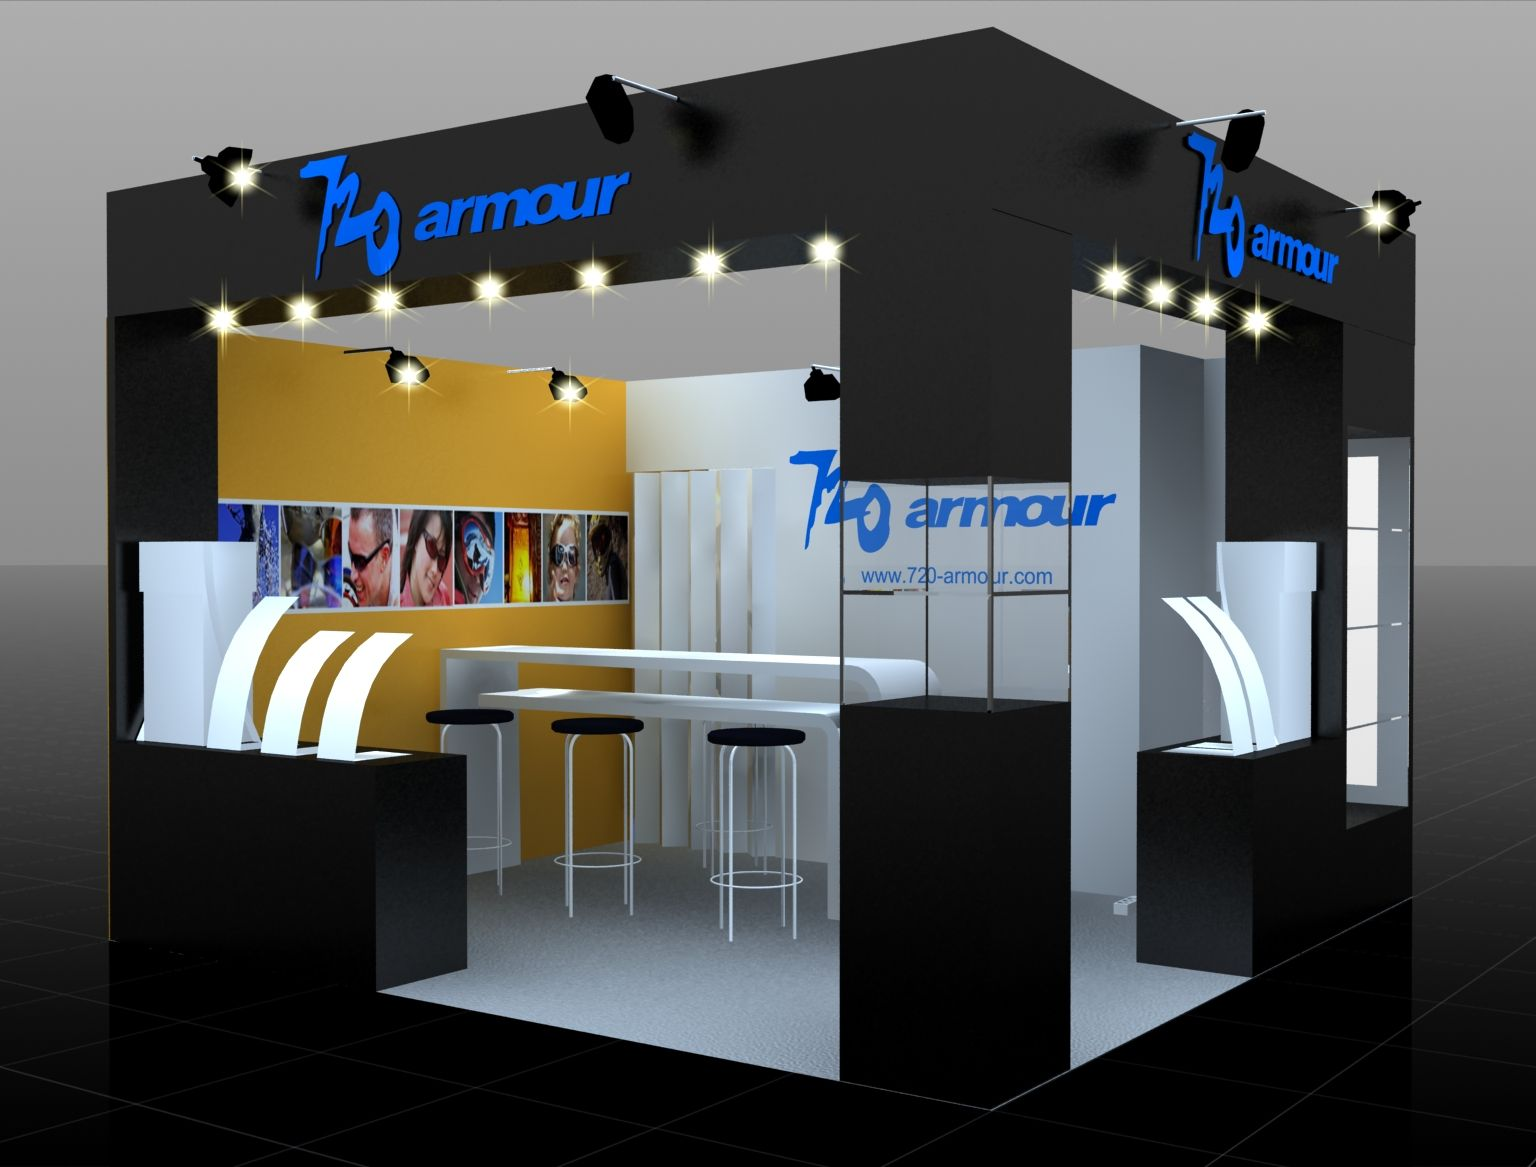 Booth Design Ideas head turning trade show booth design and layout ideas 1000 Images About B O O T H S On Pinterest Trade Show Booths Trade Show And Trade Show Displays Photo Booth Design Ideas